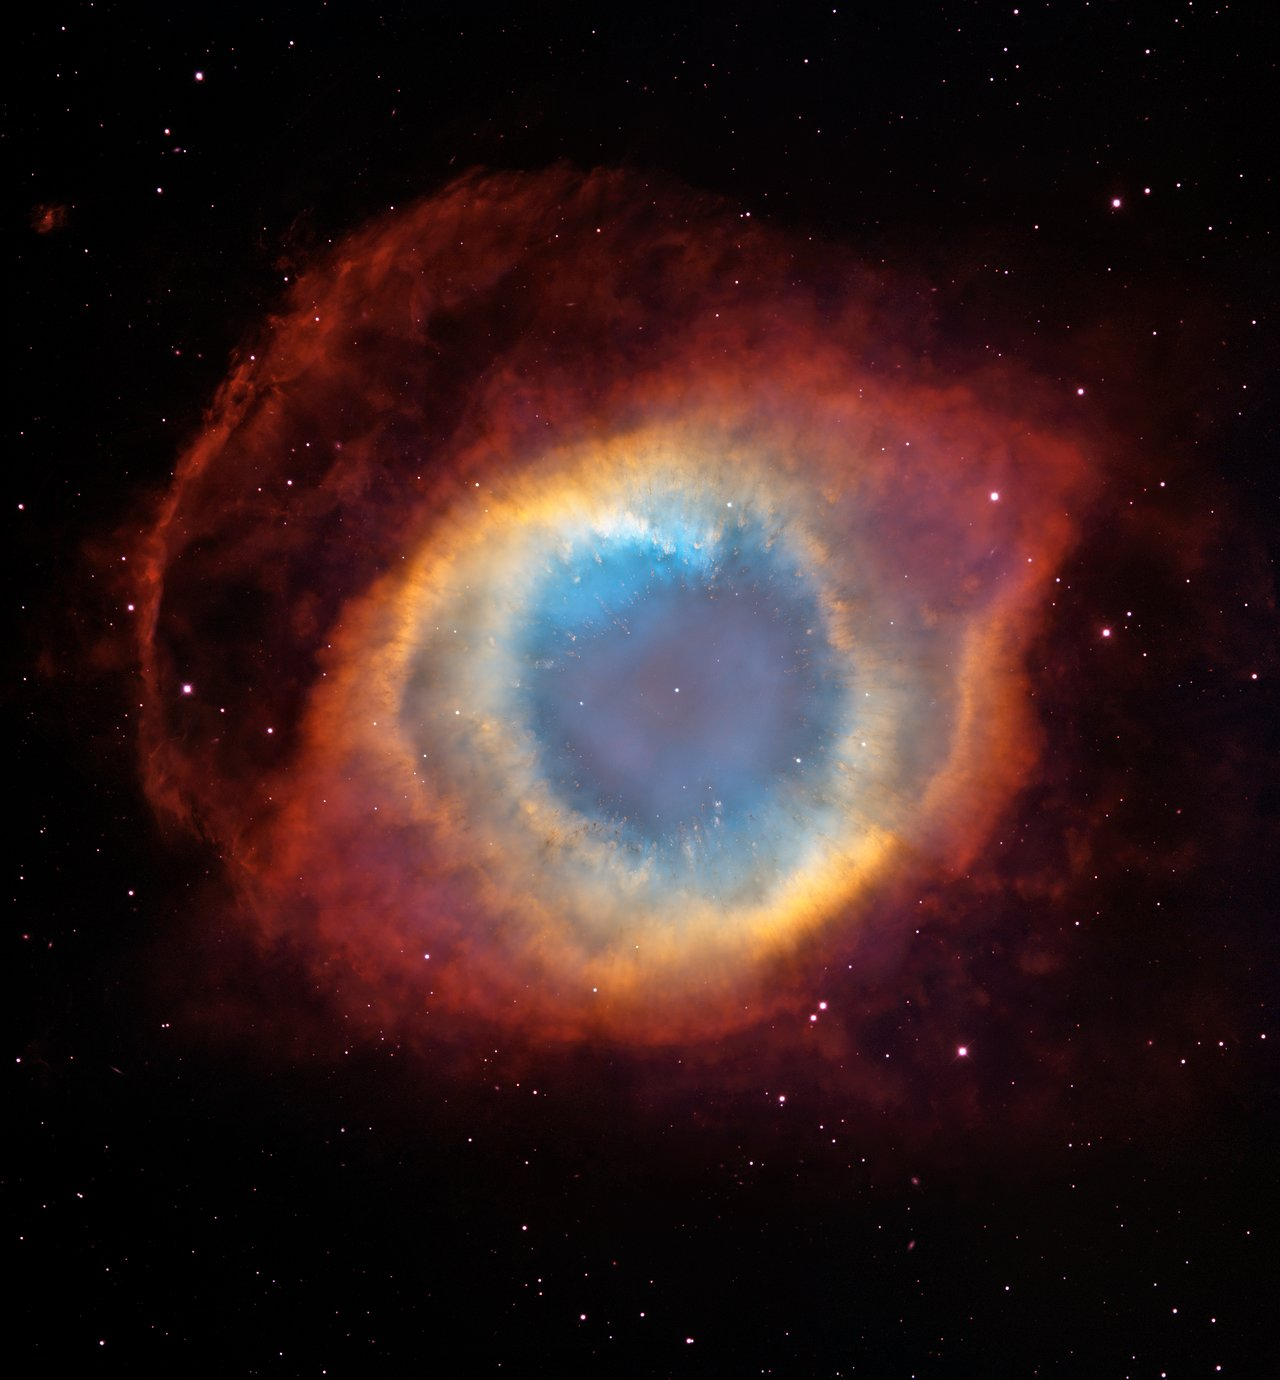 A New View Of The Helix Nebula